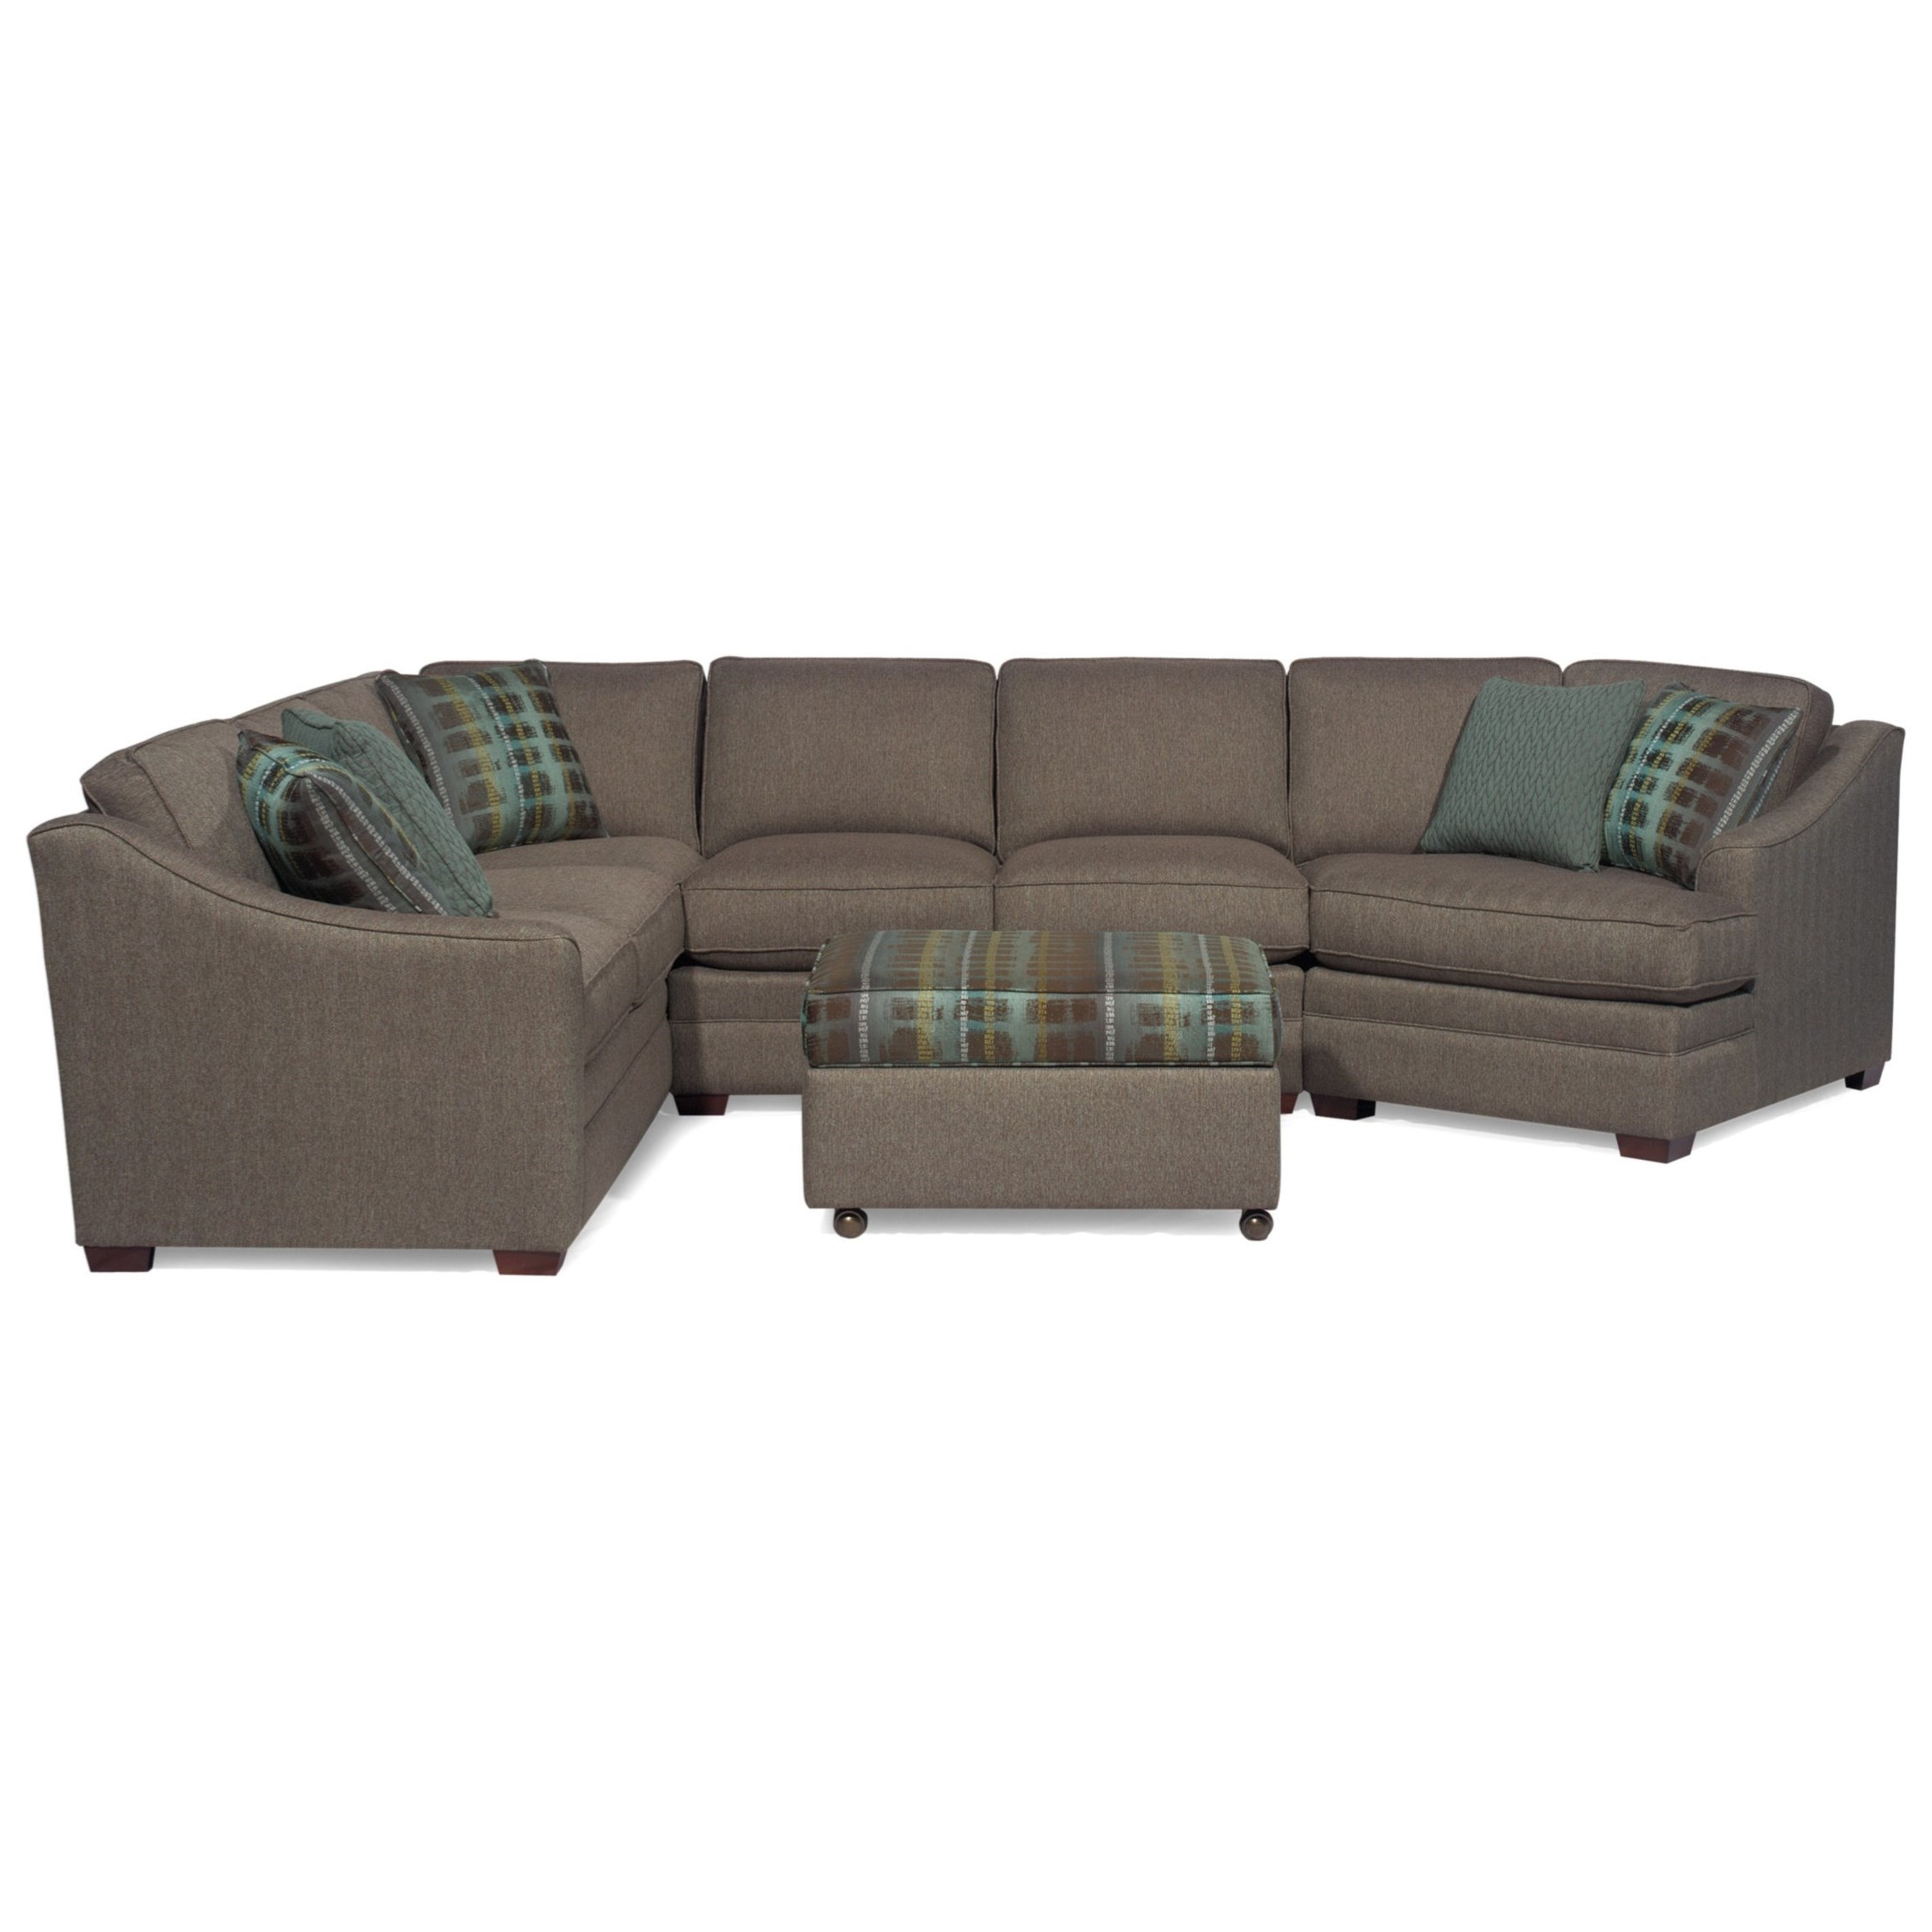 Well Known Avery 2 Piece Sectionals With Raf Armless Chaise For Craftmaster F9 Design Options <B>Customizable</b> 3 Piece Sectional (View 20 of 20)